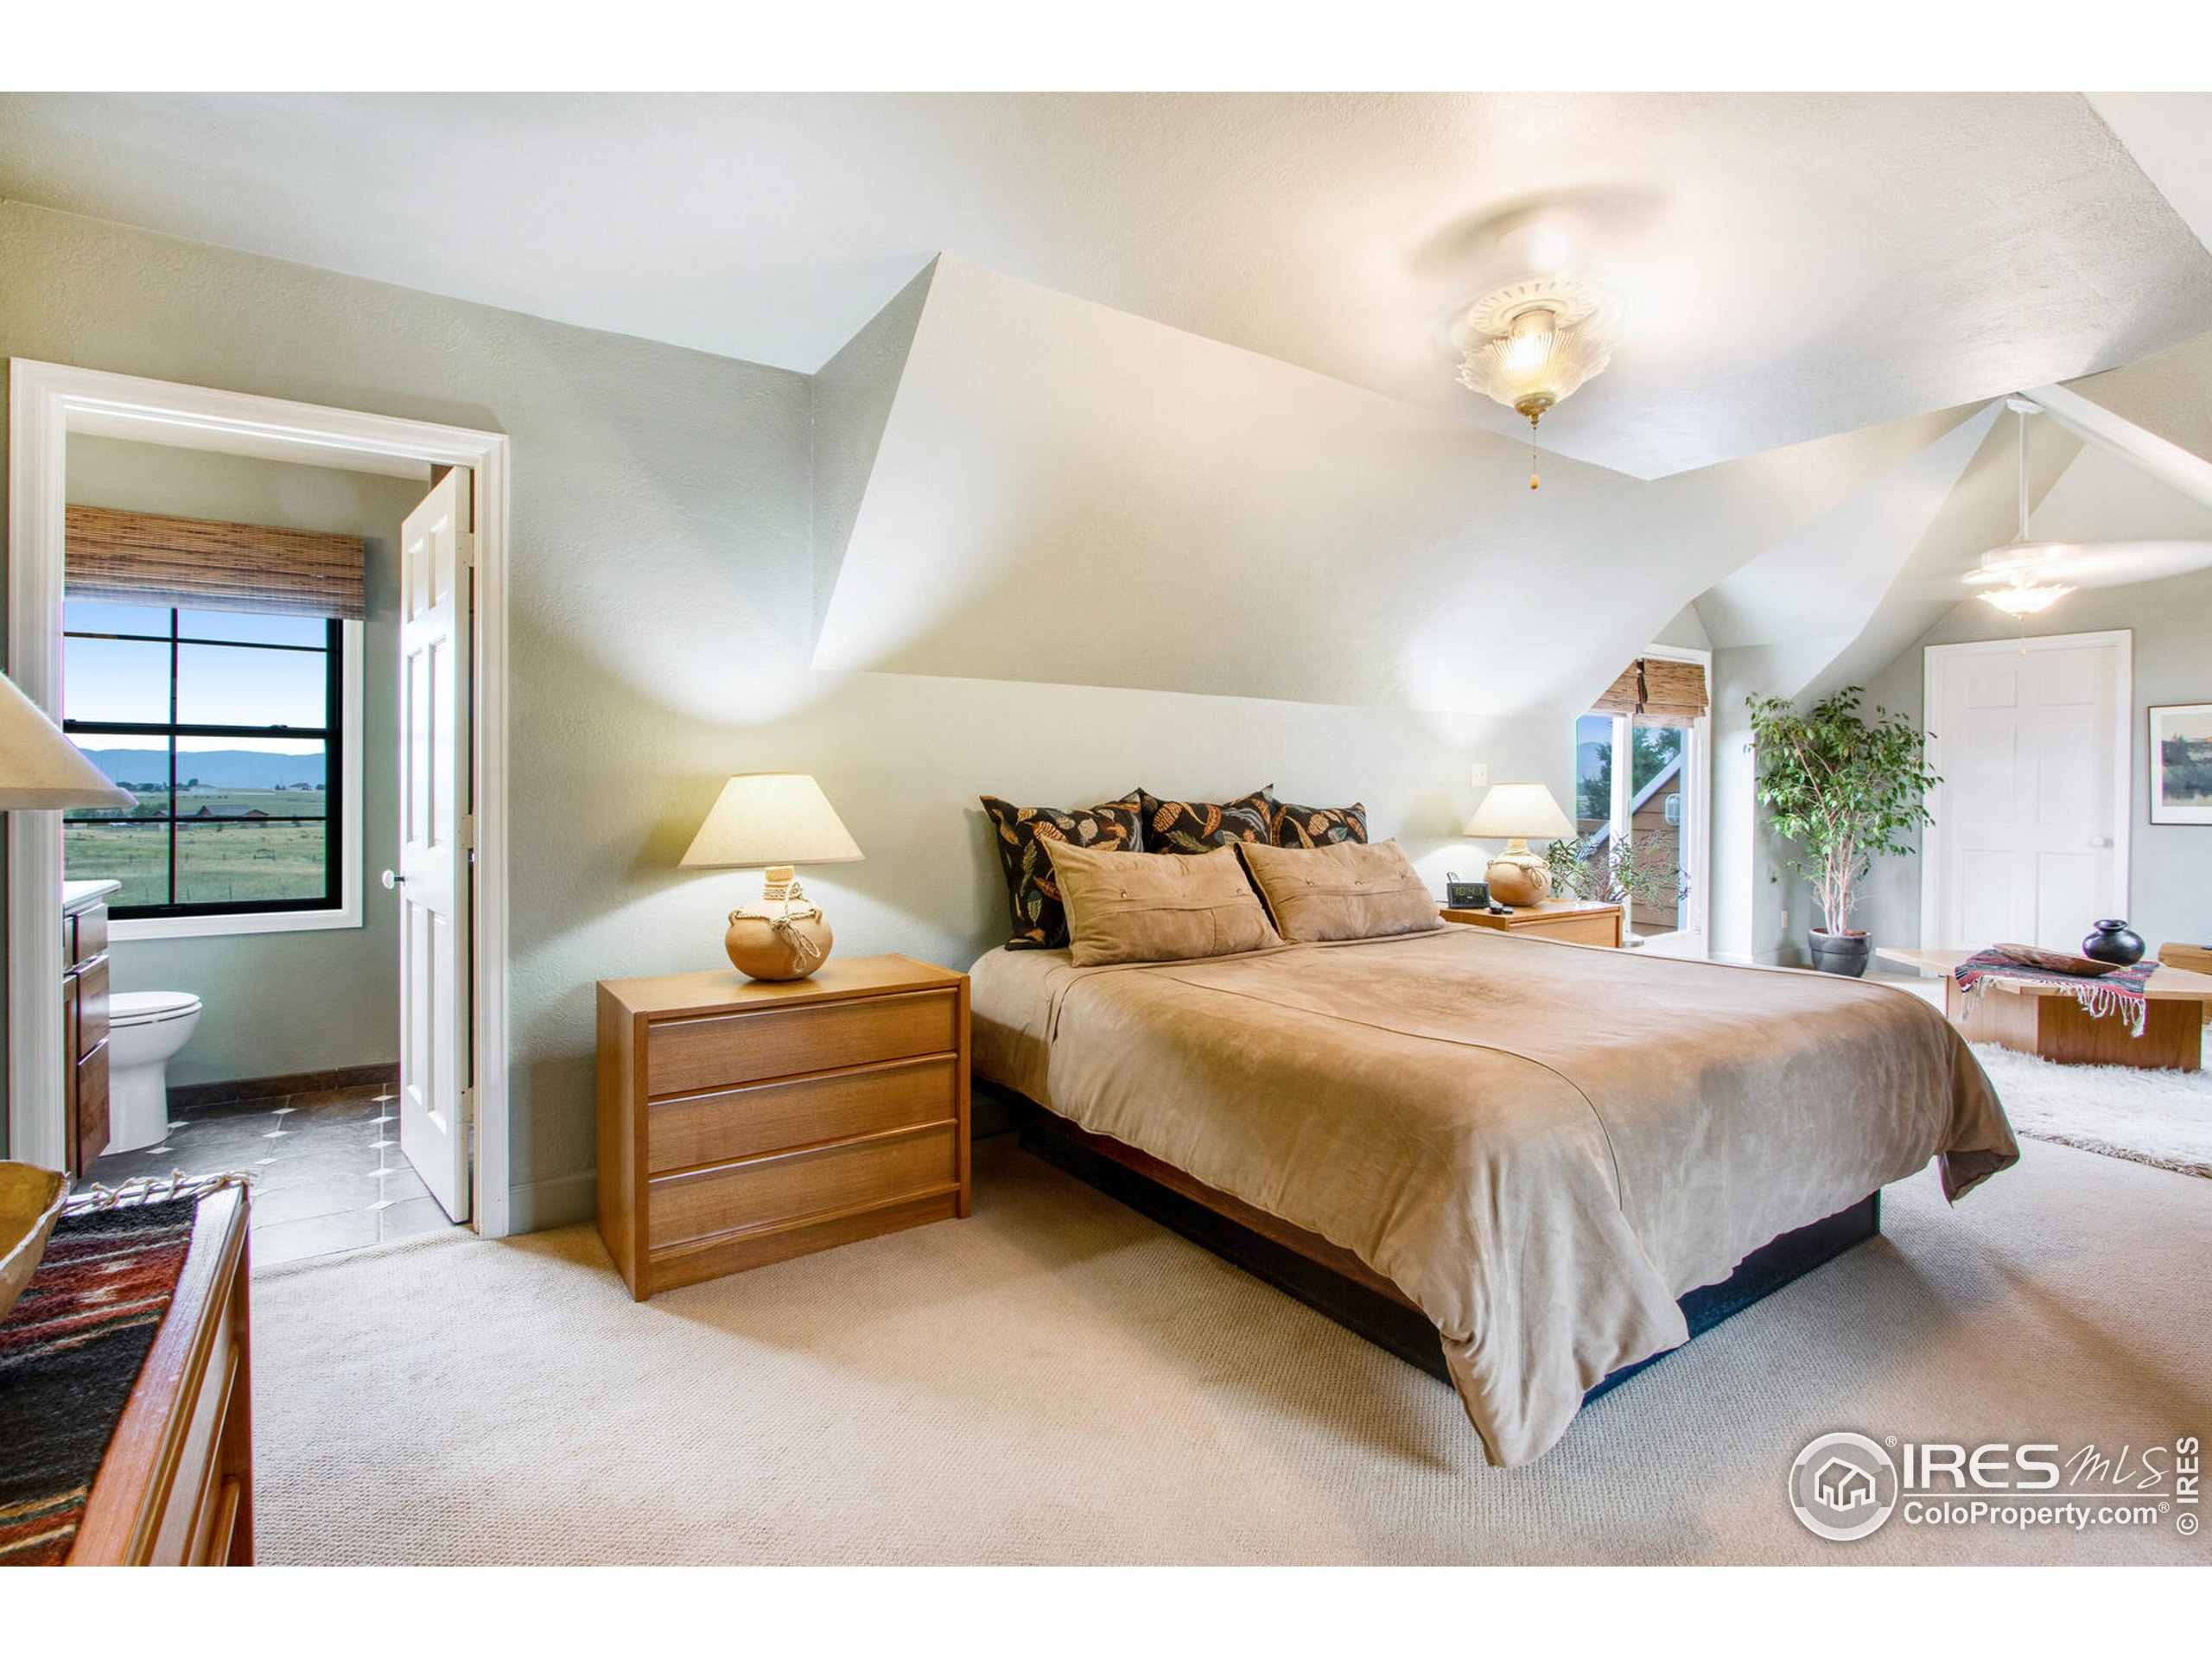 Another angle expansive Master Suite bright and spacious with stunning Rocky Mountain views!